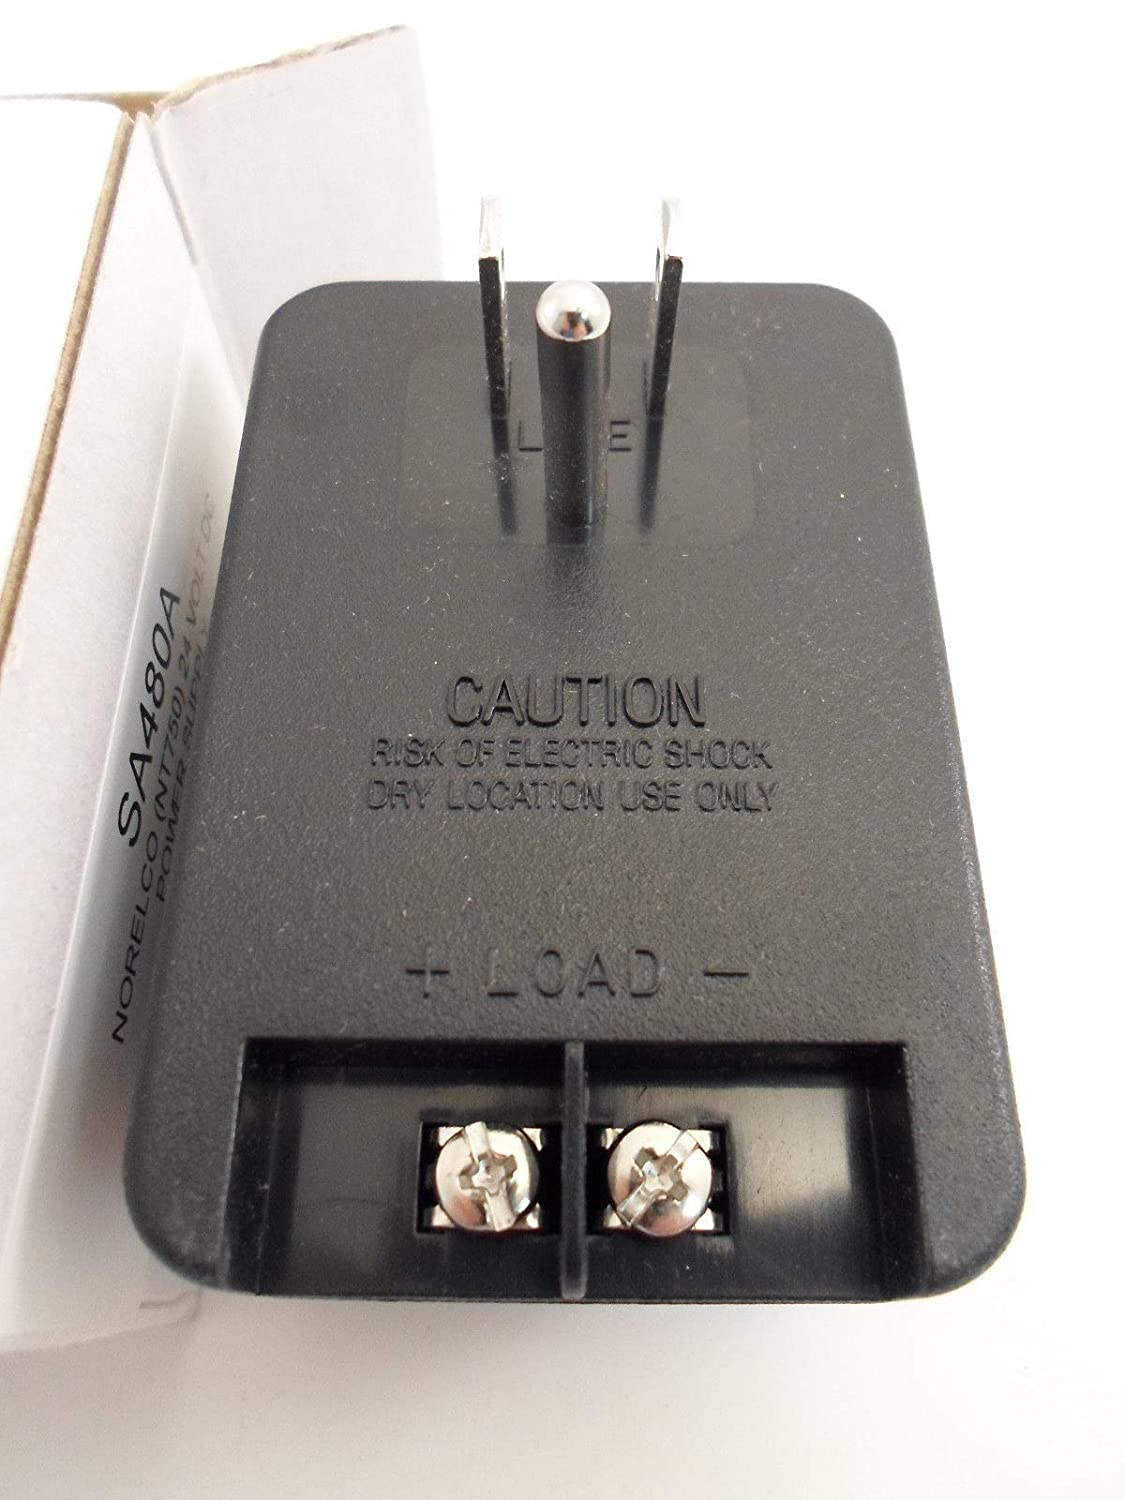 NTL-750 24 Volt DC 500MA Power Supply Compatible with Norelco Self Amplified Horns